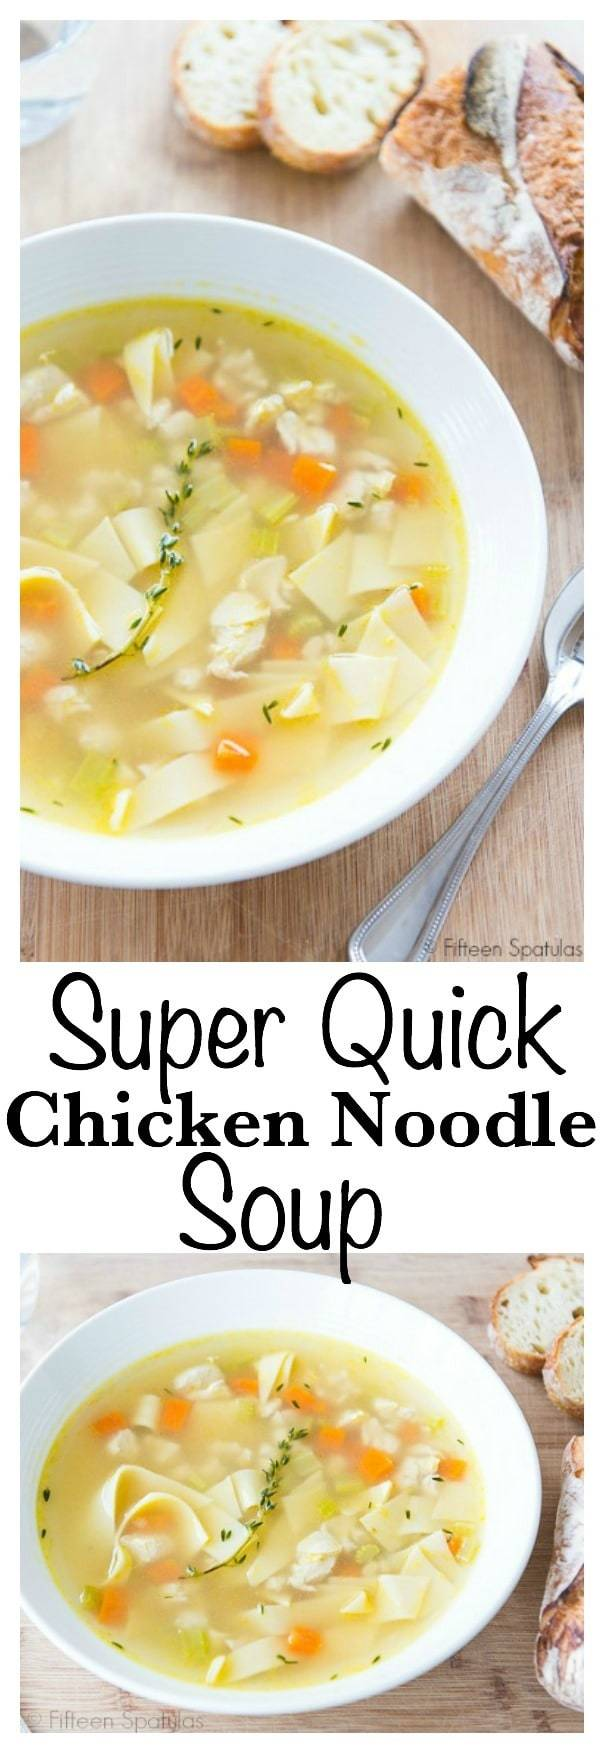 Photo Collage of Quick Chicken Noodle Soup